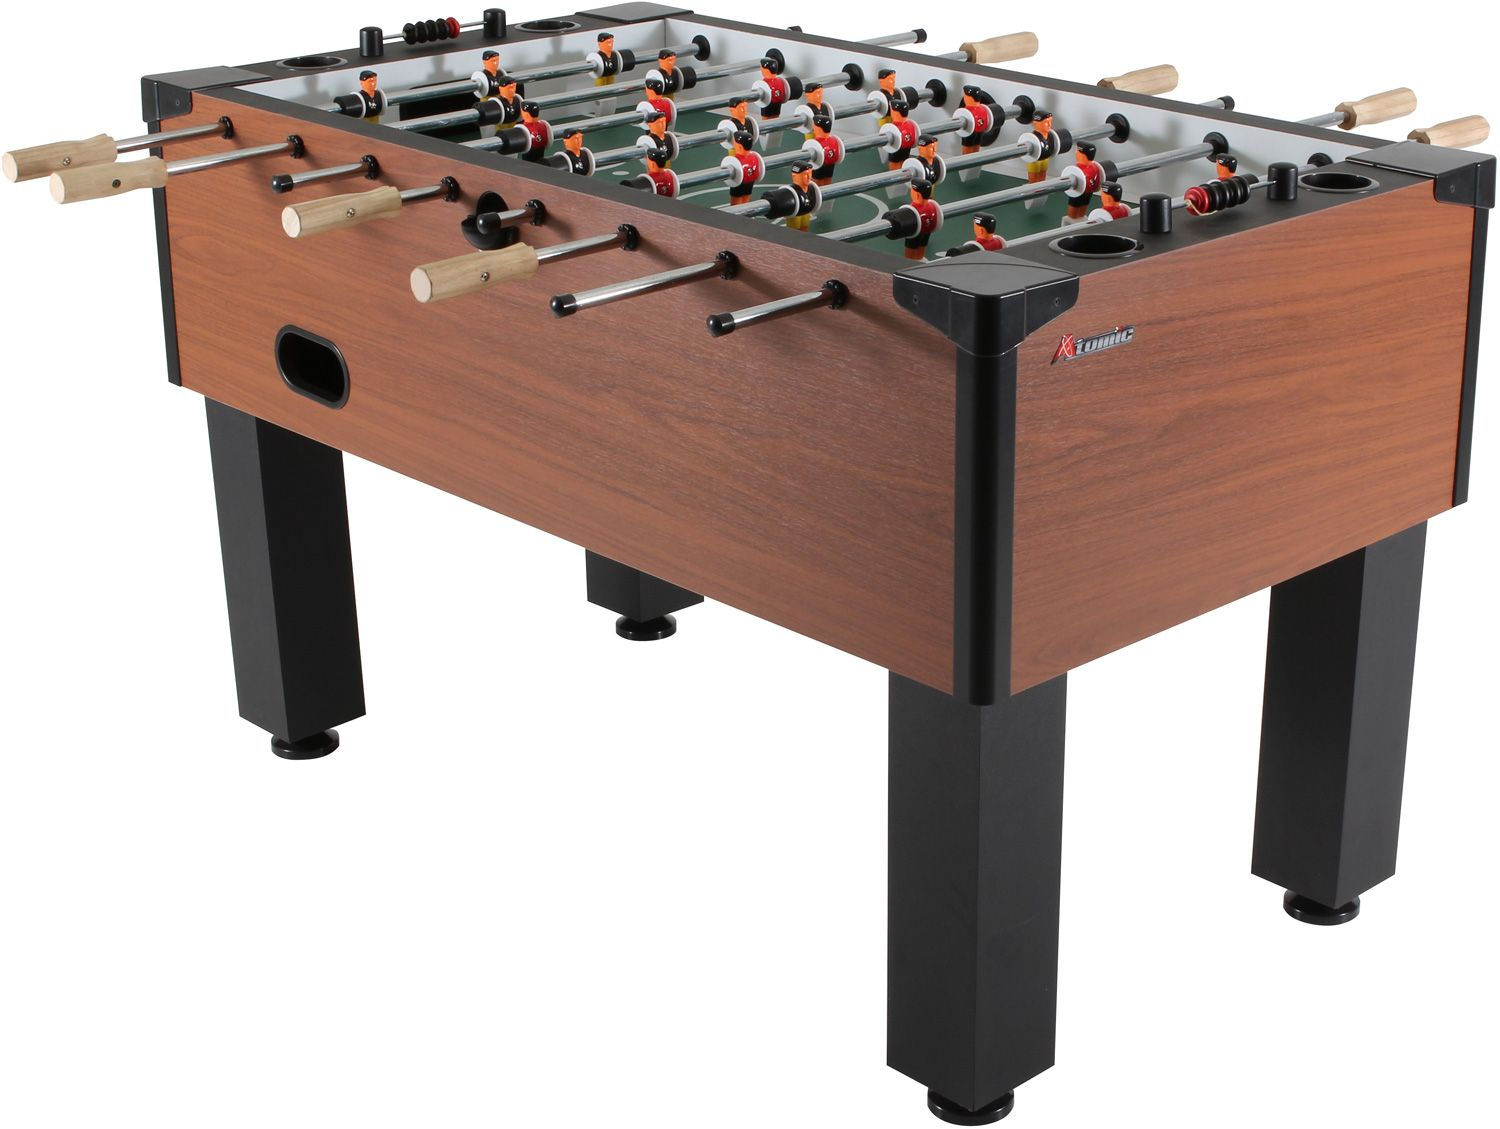 Awesome Atomic Gladiator Foosball Table